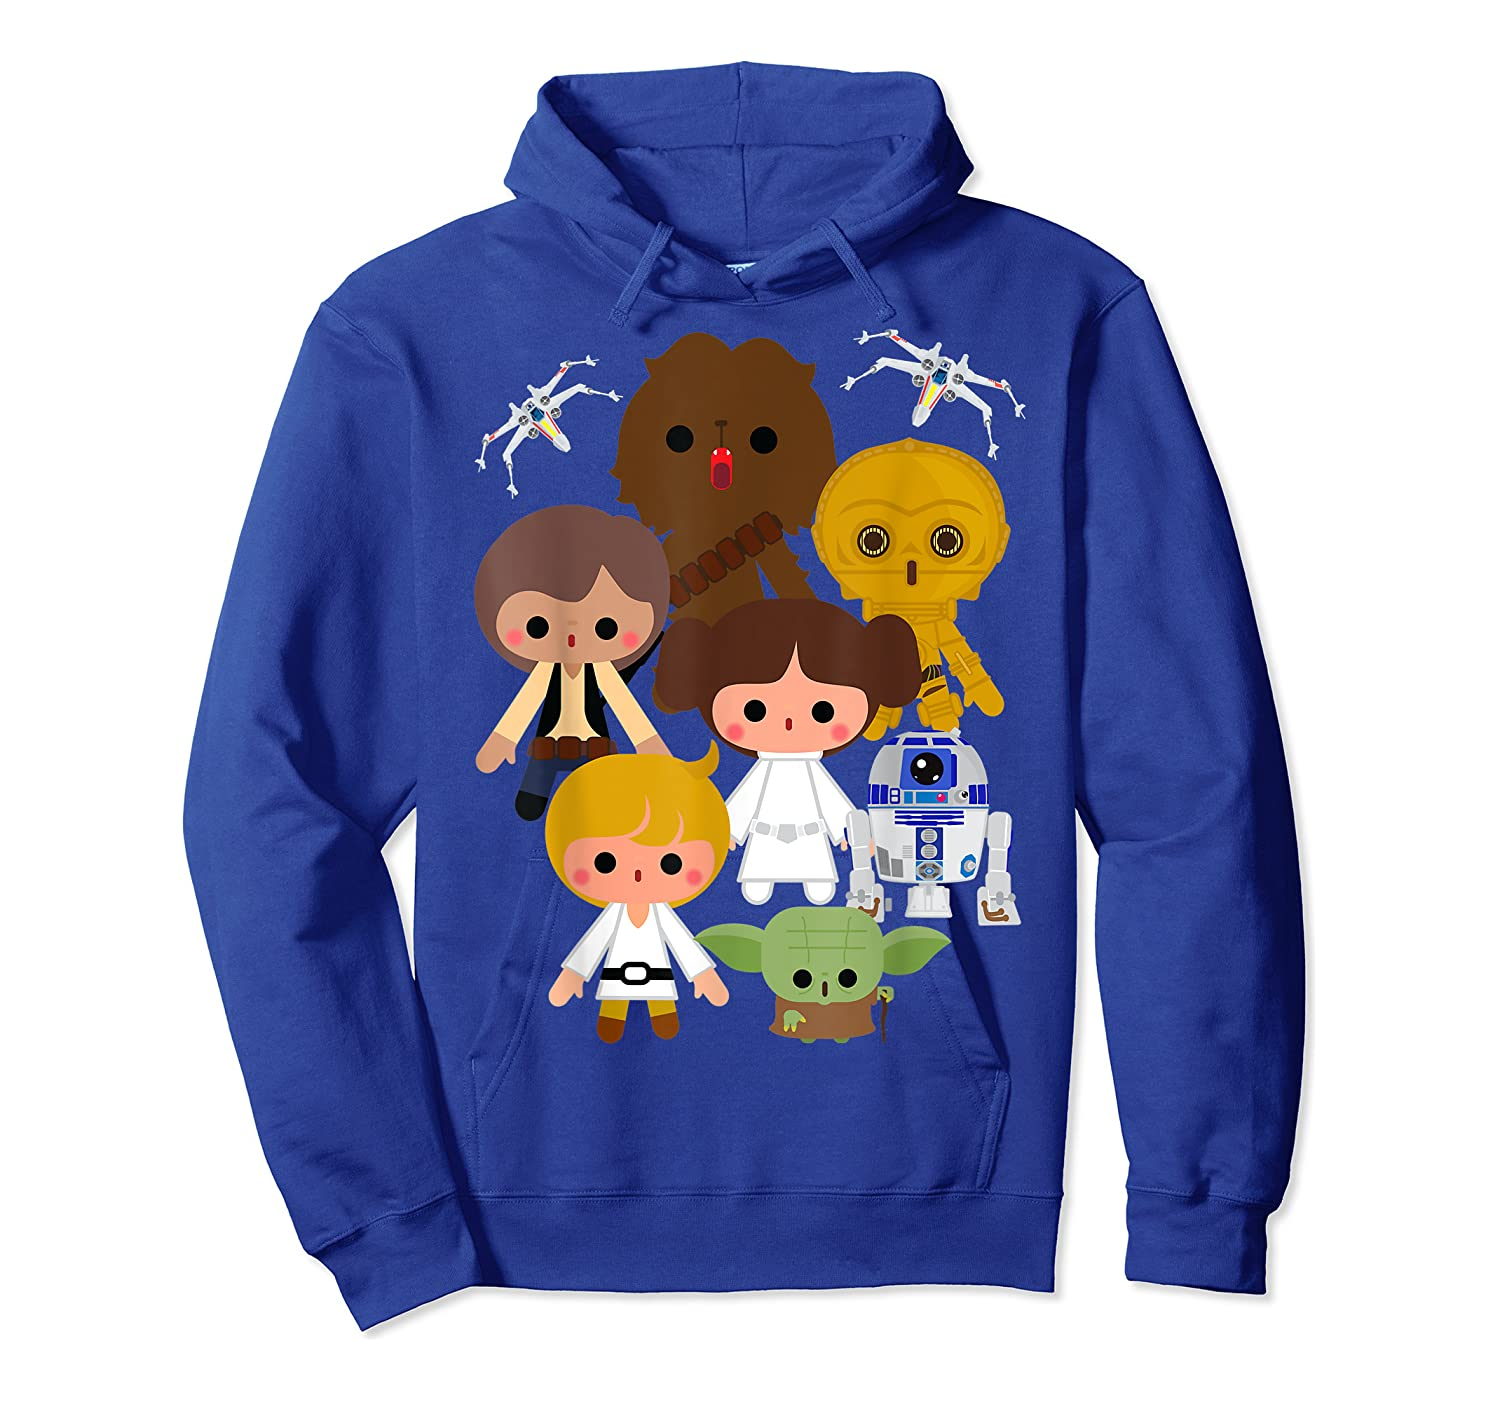 S Cute Kawaii Style Heroes Graphic C1 Shirts Unisex Pullover Hoodie